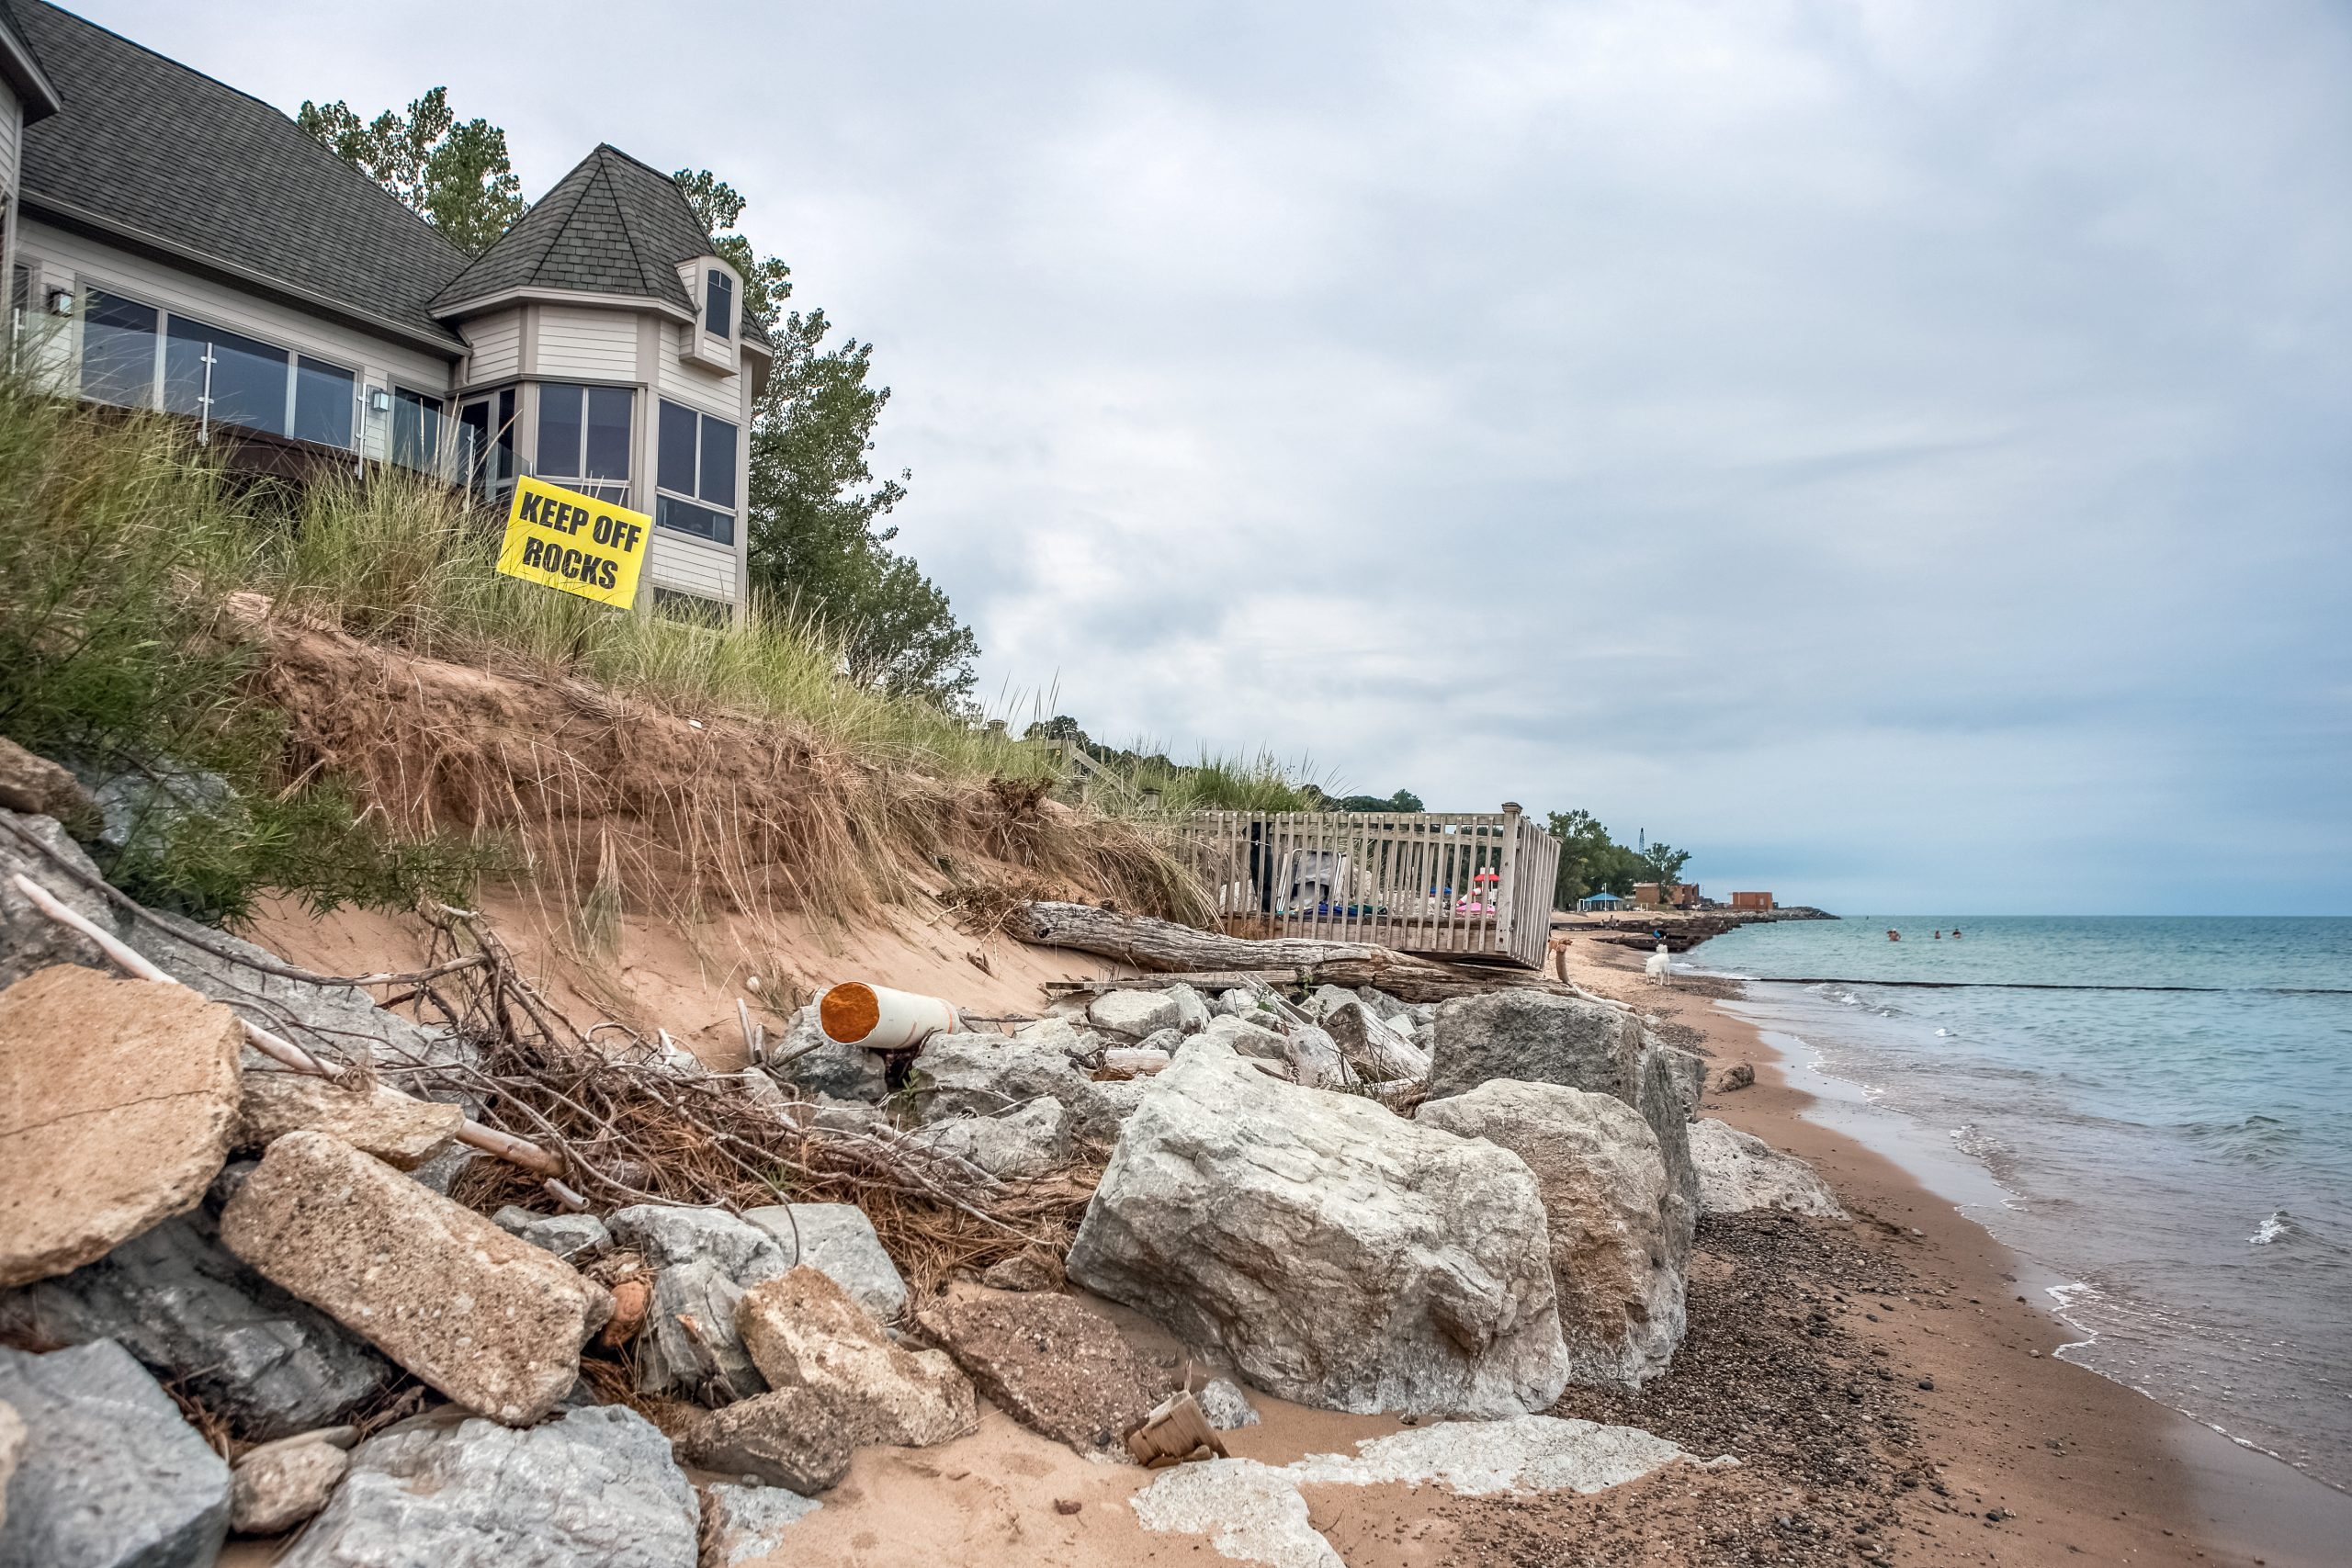 Beach houses on Lake Michigan, lake erosion dangerously close to houses, half the beach is gone due to high water